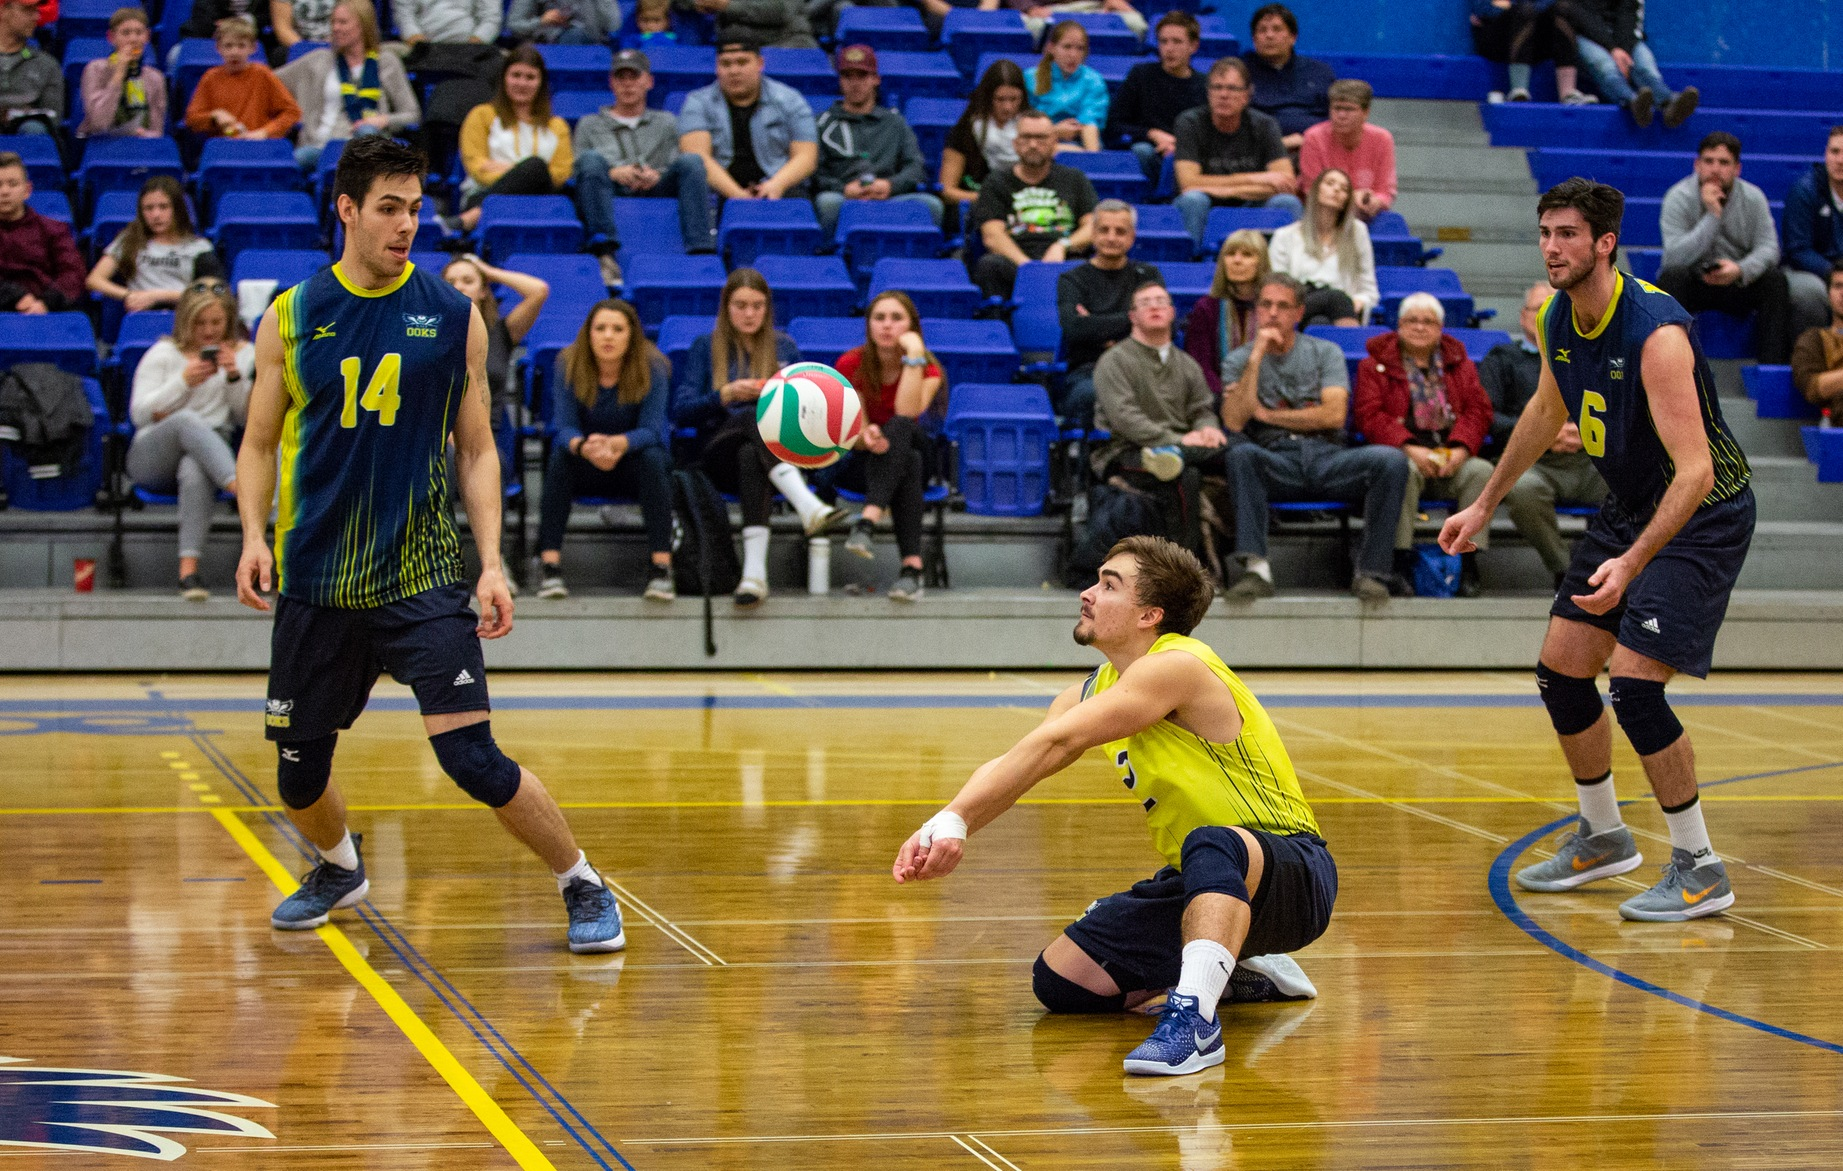 Huskies Win Final Three Sets To Top Ooks